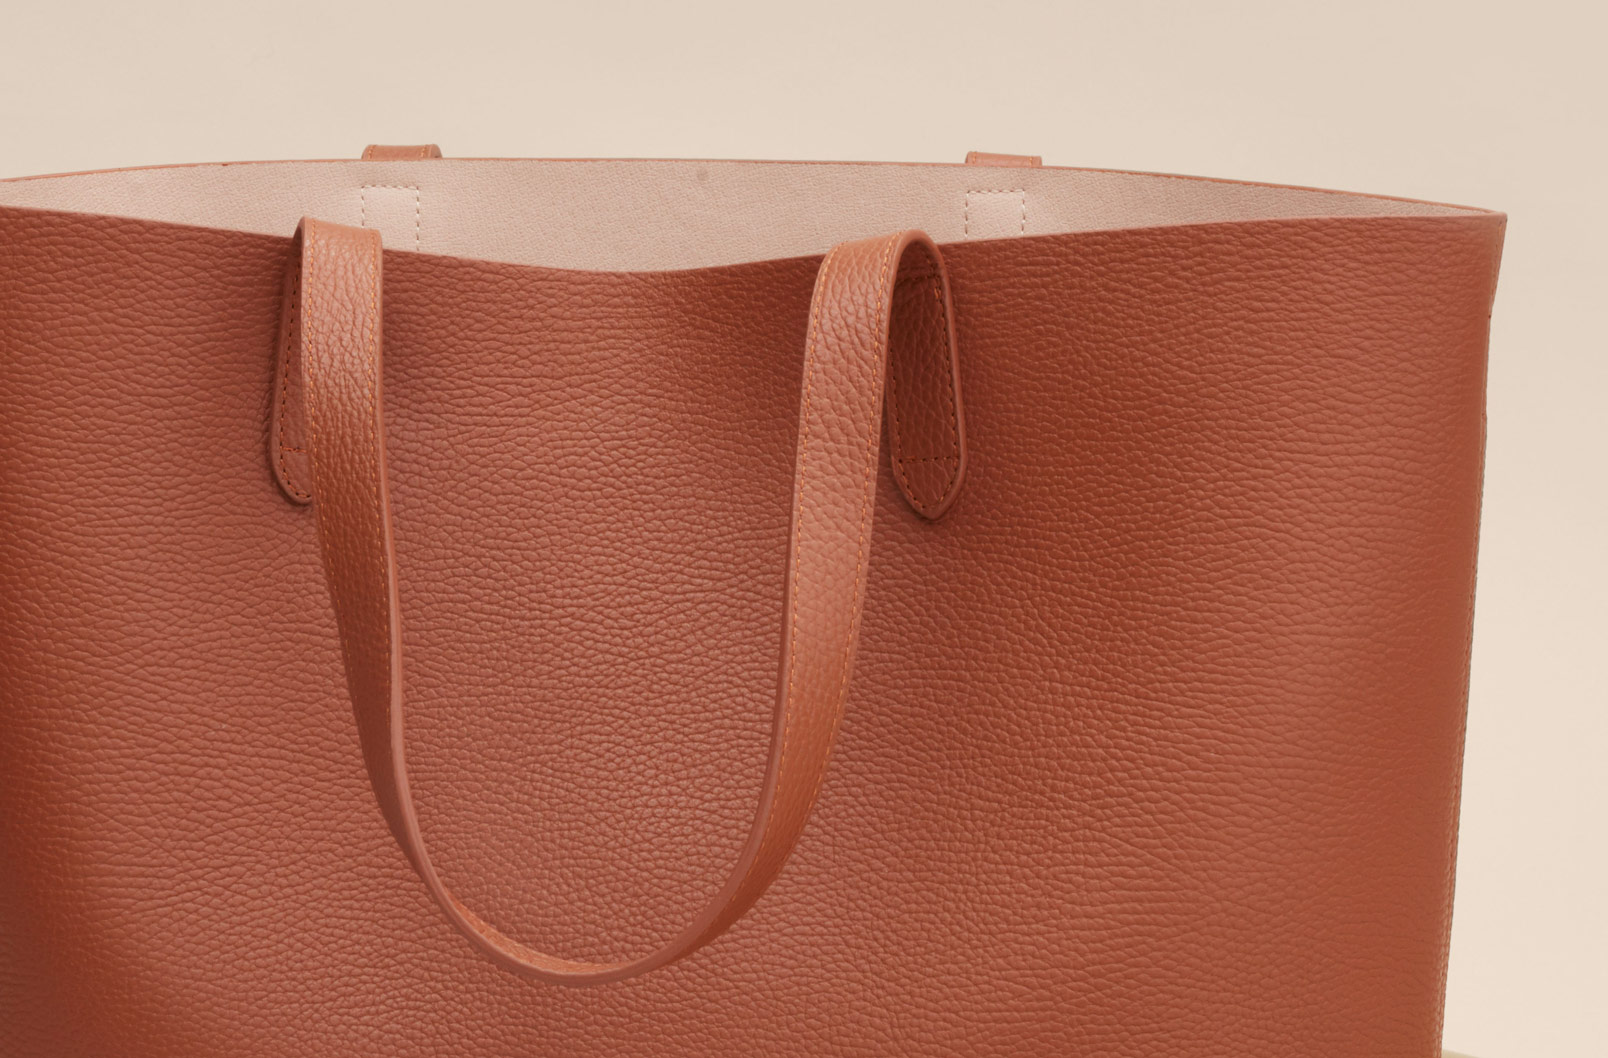 Cuyana Classic Structured Tote in Caramel Blush